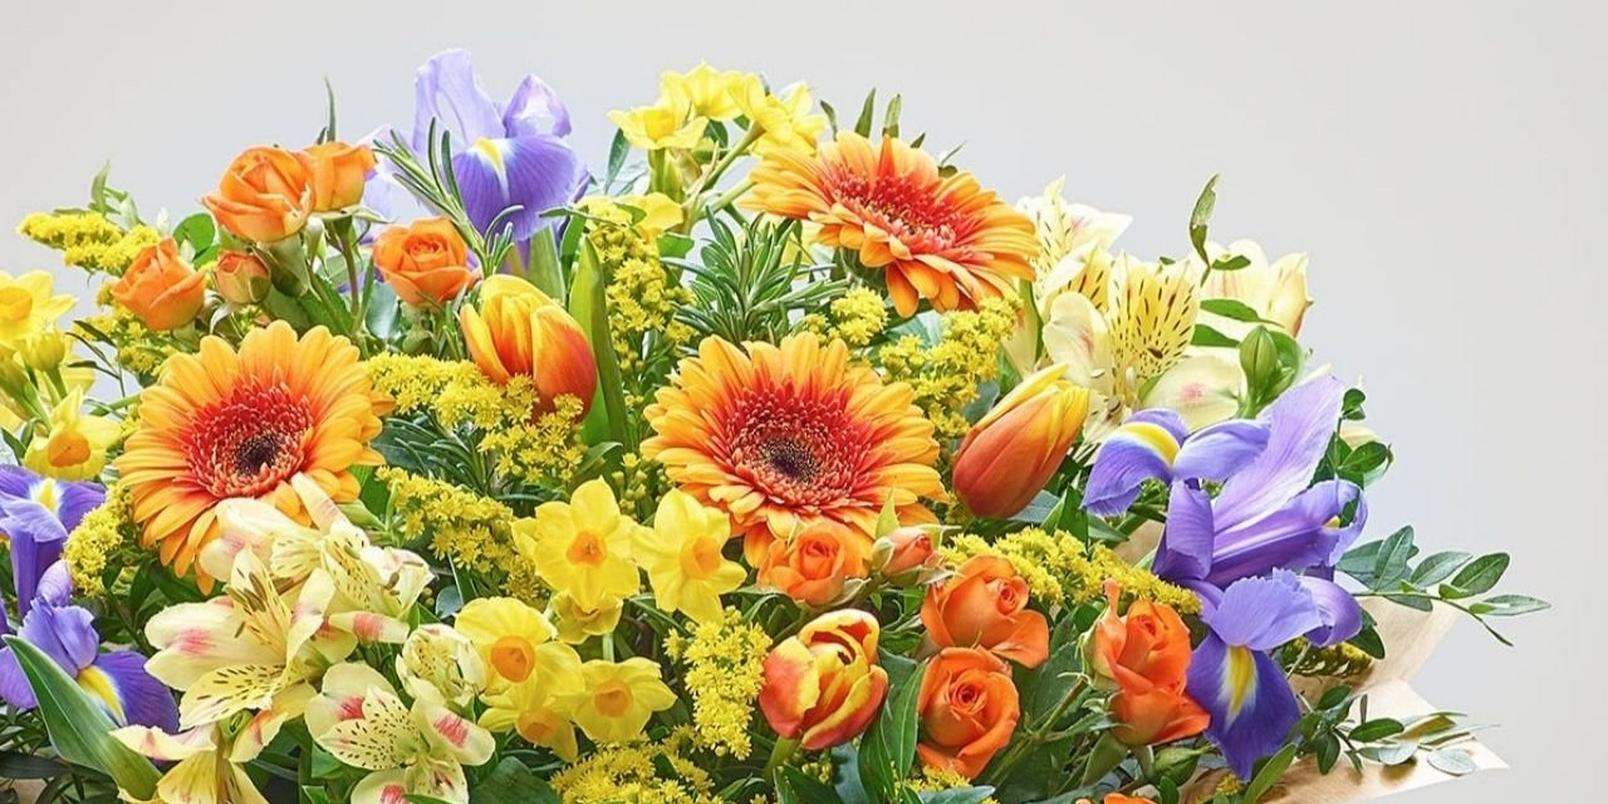 Add-a-subheading-25-spring-bouquet